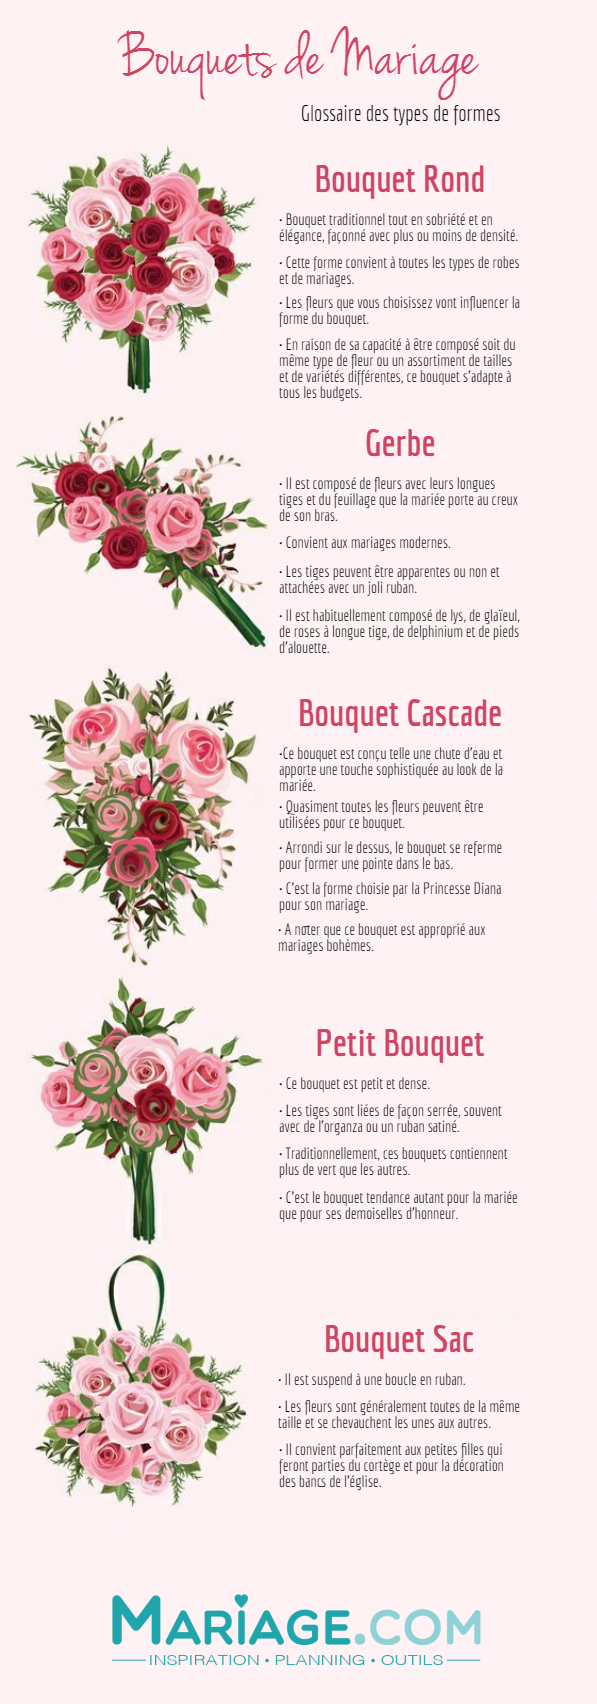 bouquet de la mari e cette infographie vous explique comment le choisir. Black Bedroom Furniture Sets. Home Design Ideas